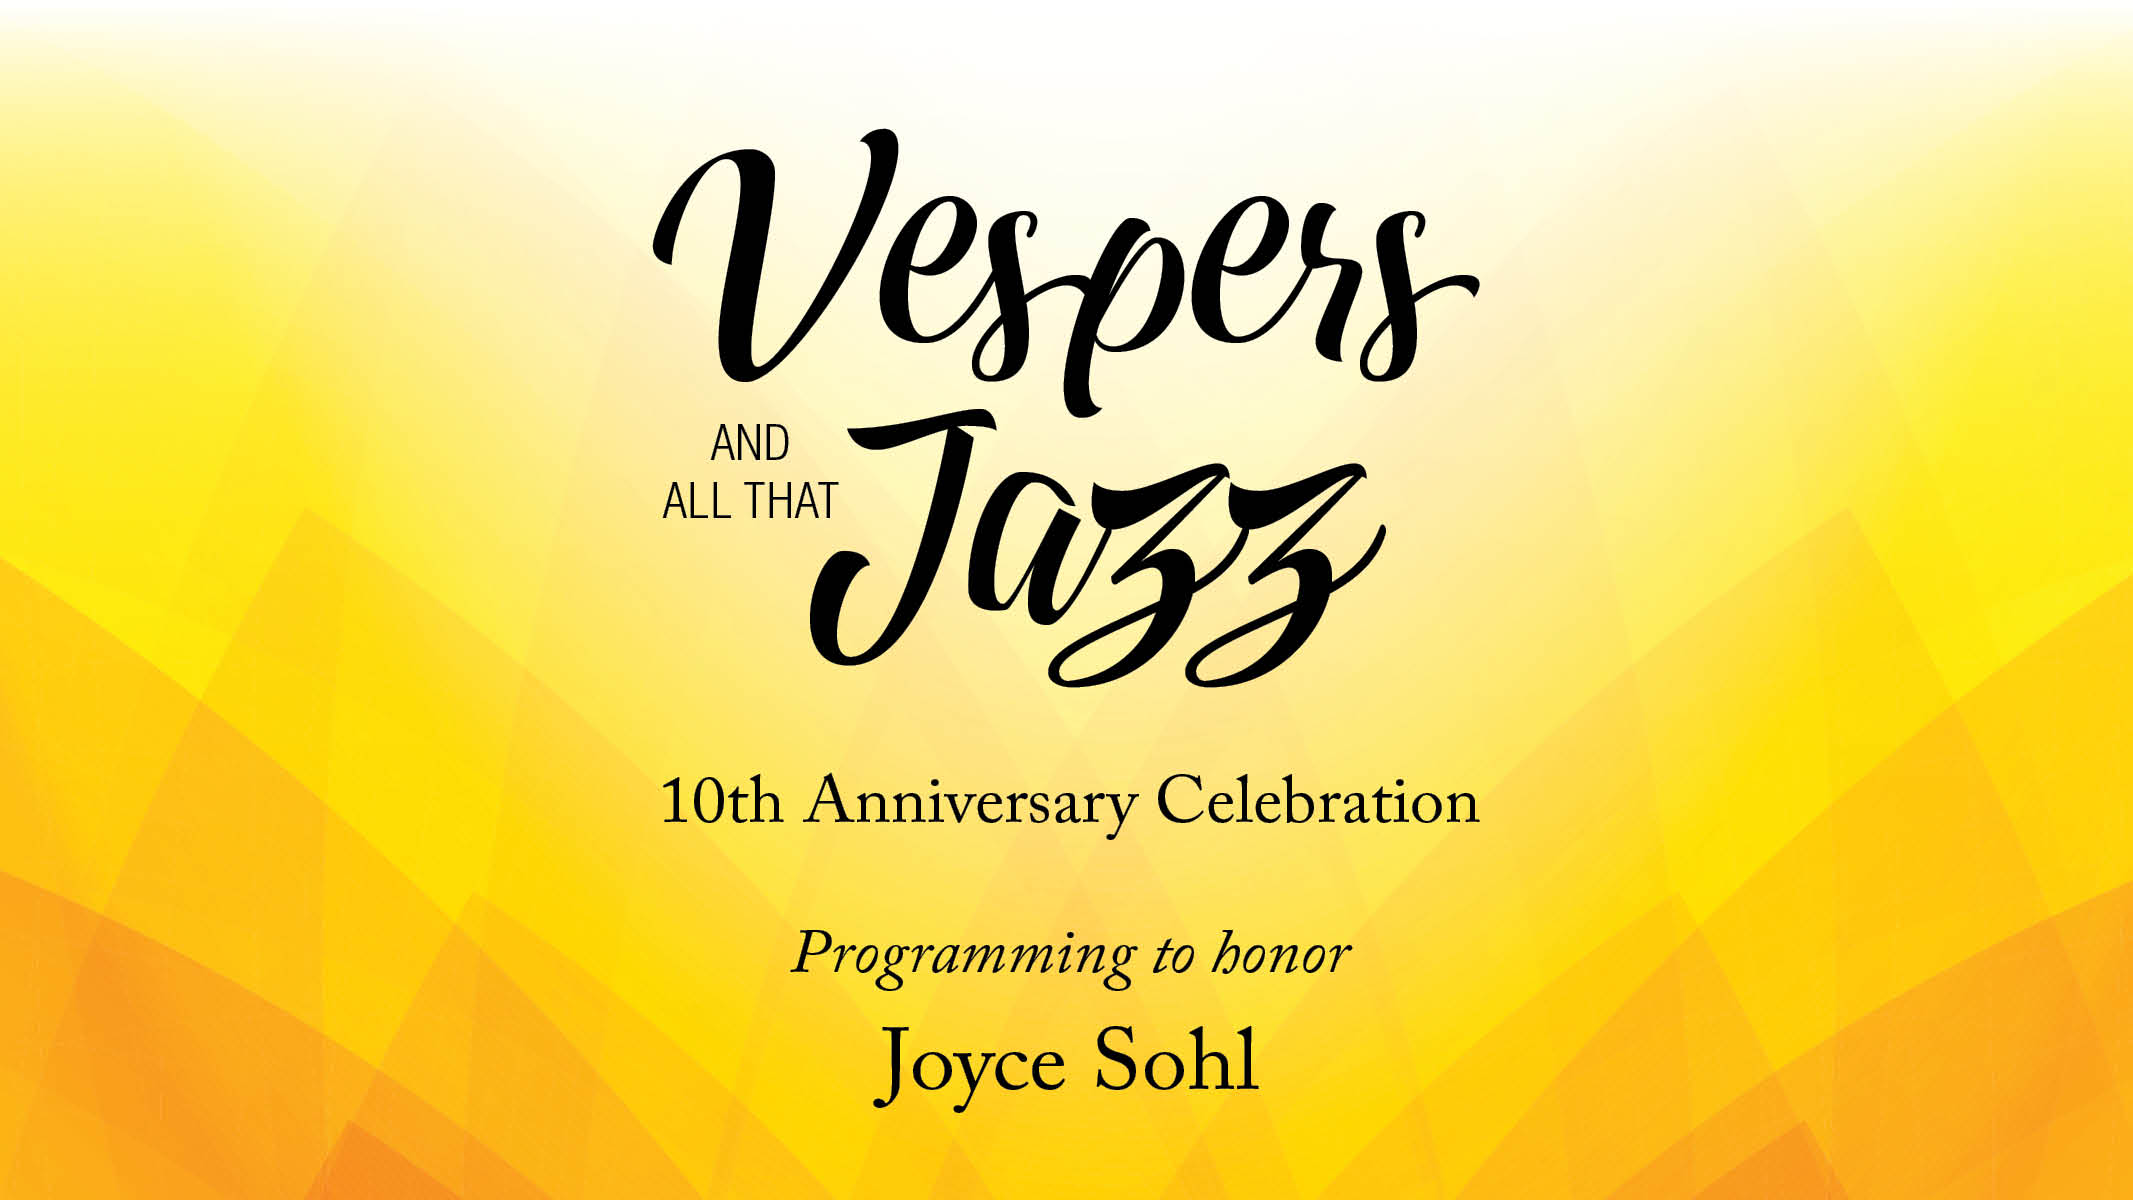 Vepers & All That Jazz 10th Anniversary Celebration Honoring Joyce Sohl